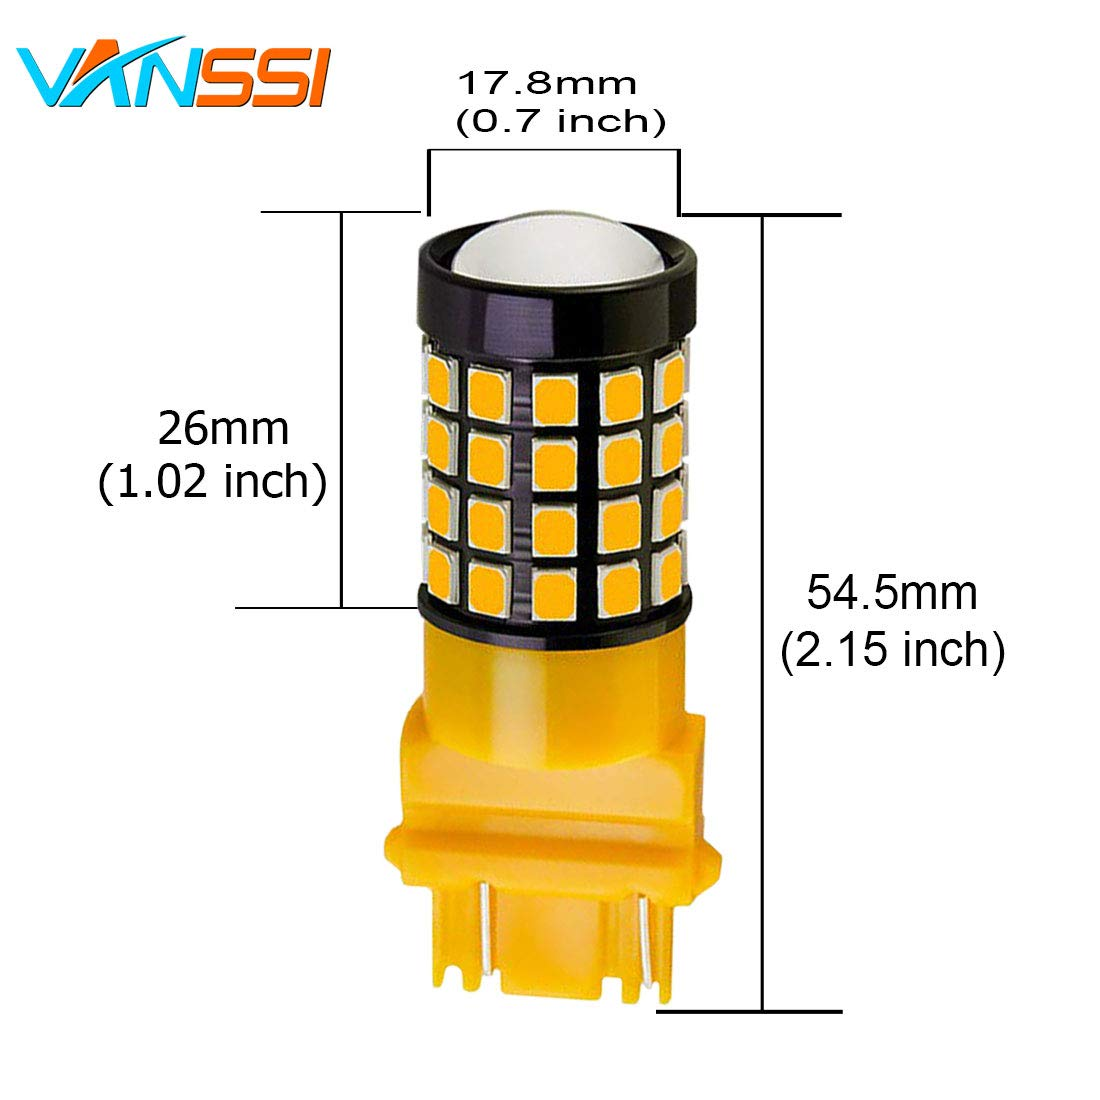 VANSSI 3157 LED Bulbs Extremely Bright 1600 Lumens 52-SMD LED 3056 3156 3057 4057 3457 4157 3157NA LED Bulbs with Projector for Backup Reverse Lights Tail Signal Lights,Amber Yellow Pack of 2